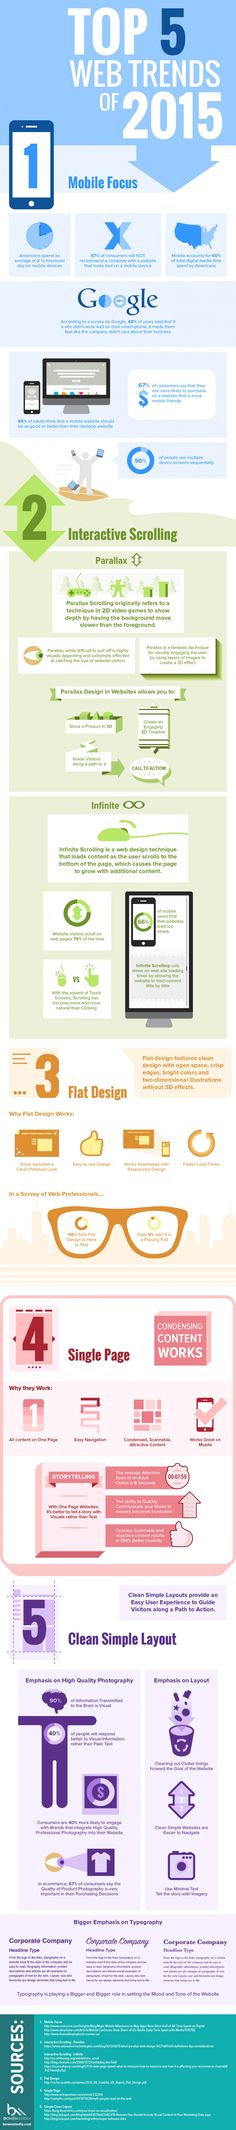 Top 5 #WebDesign #Trends for 2015 [ #infographic ]